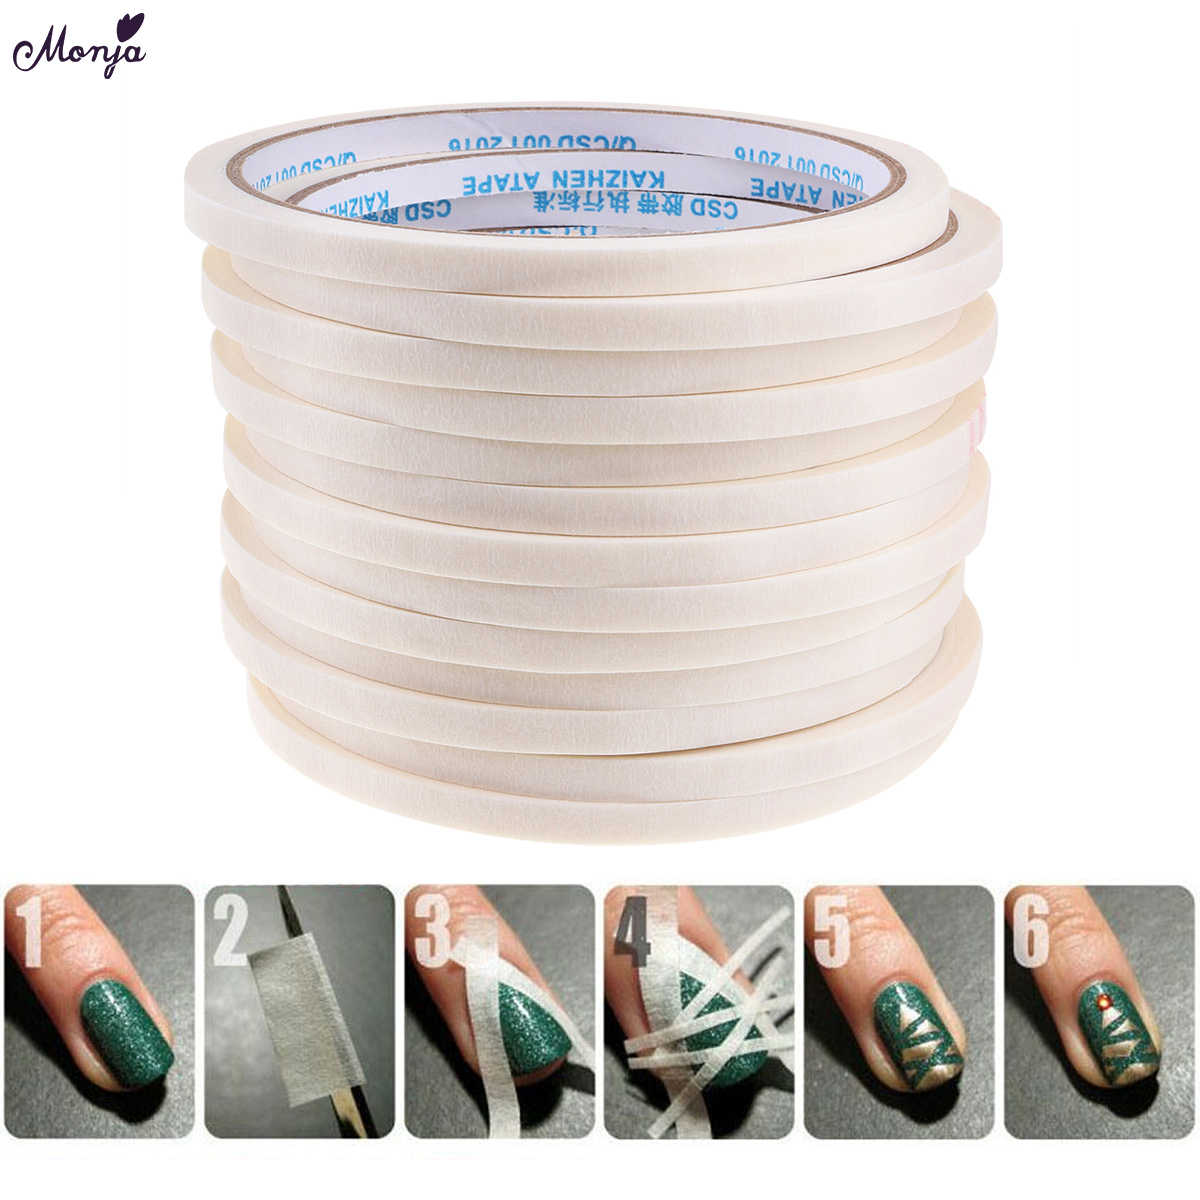 Monja 1Pcs 3/4/5mm Nail Art Stripe Adhesive Tape Rolls Decoration Guide Design Tips DIY White Striping Sticker Manicure Tools